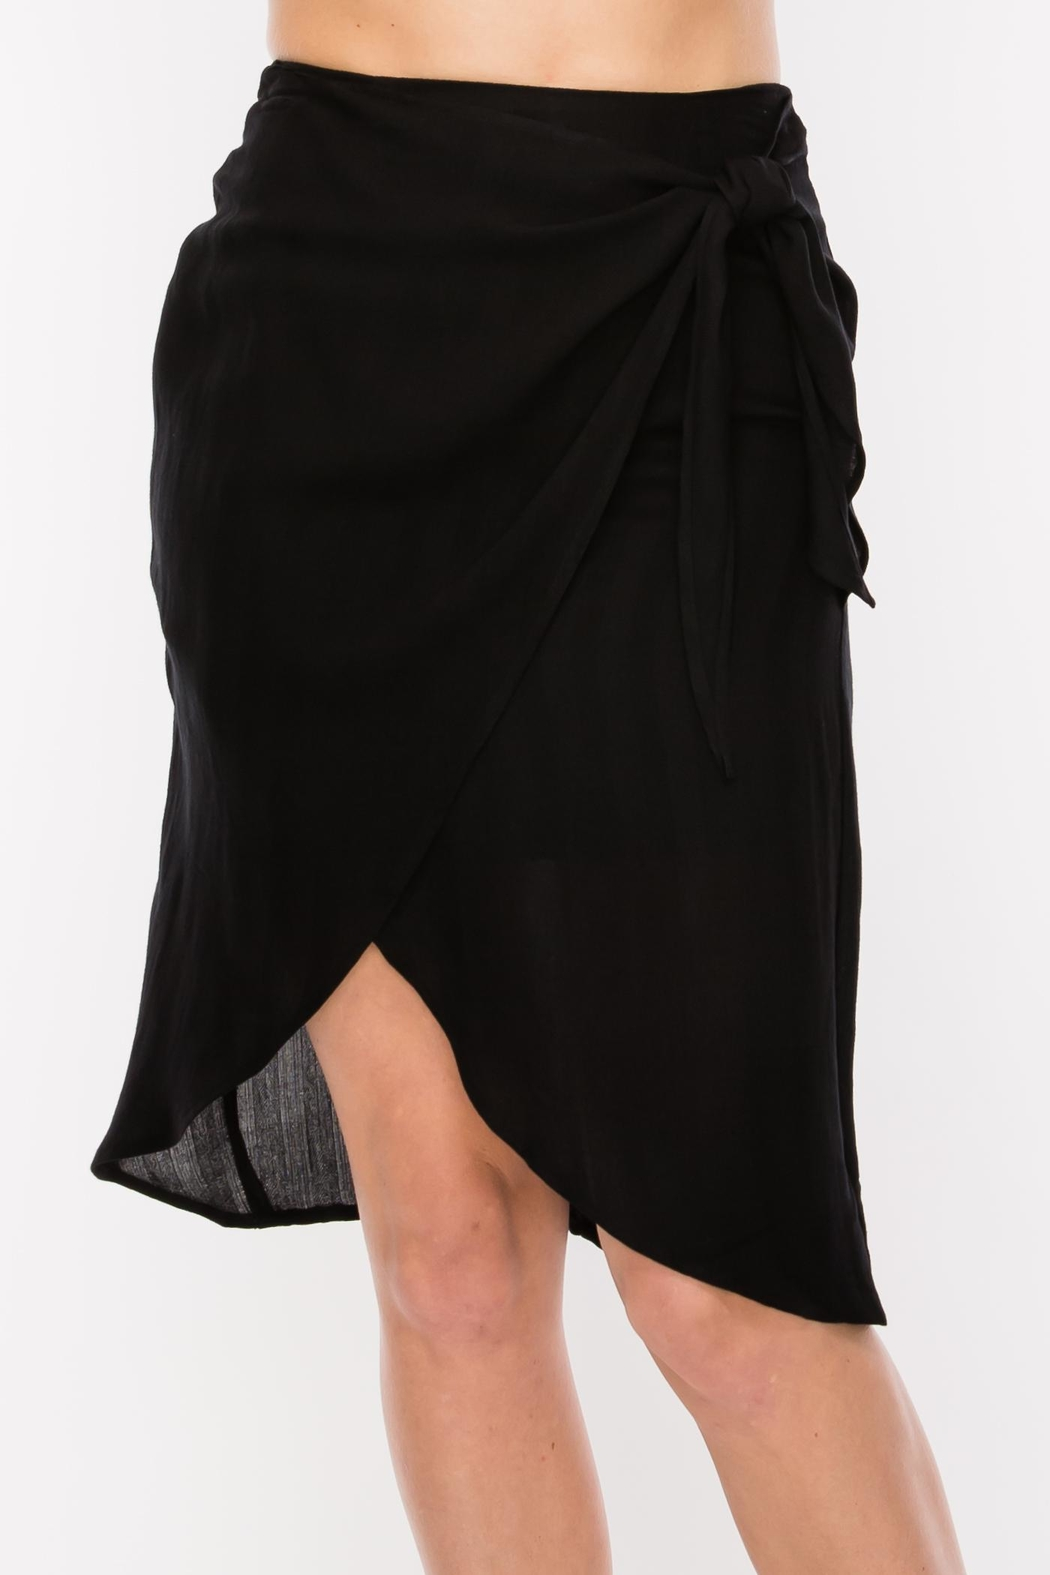 HYFVE Side Tie Skirt - Front Cropped Image